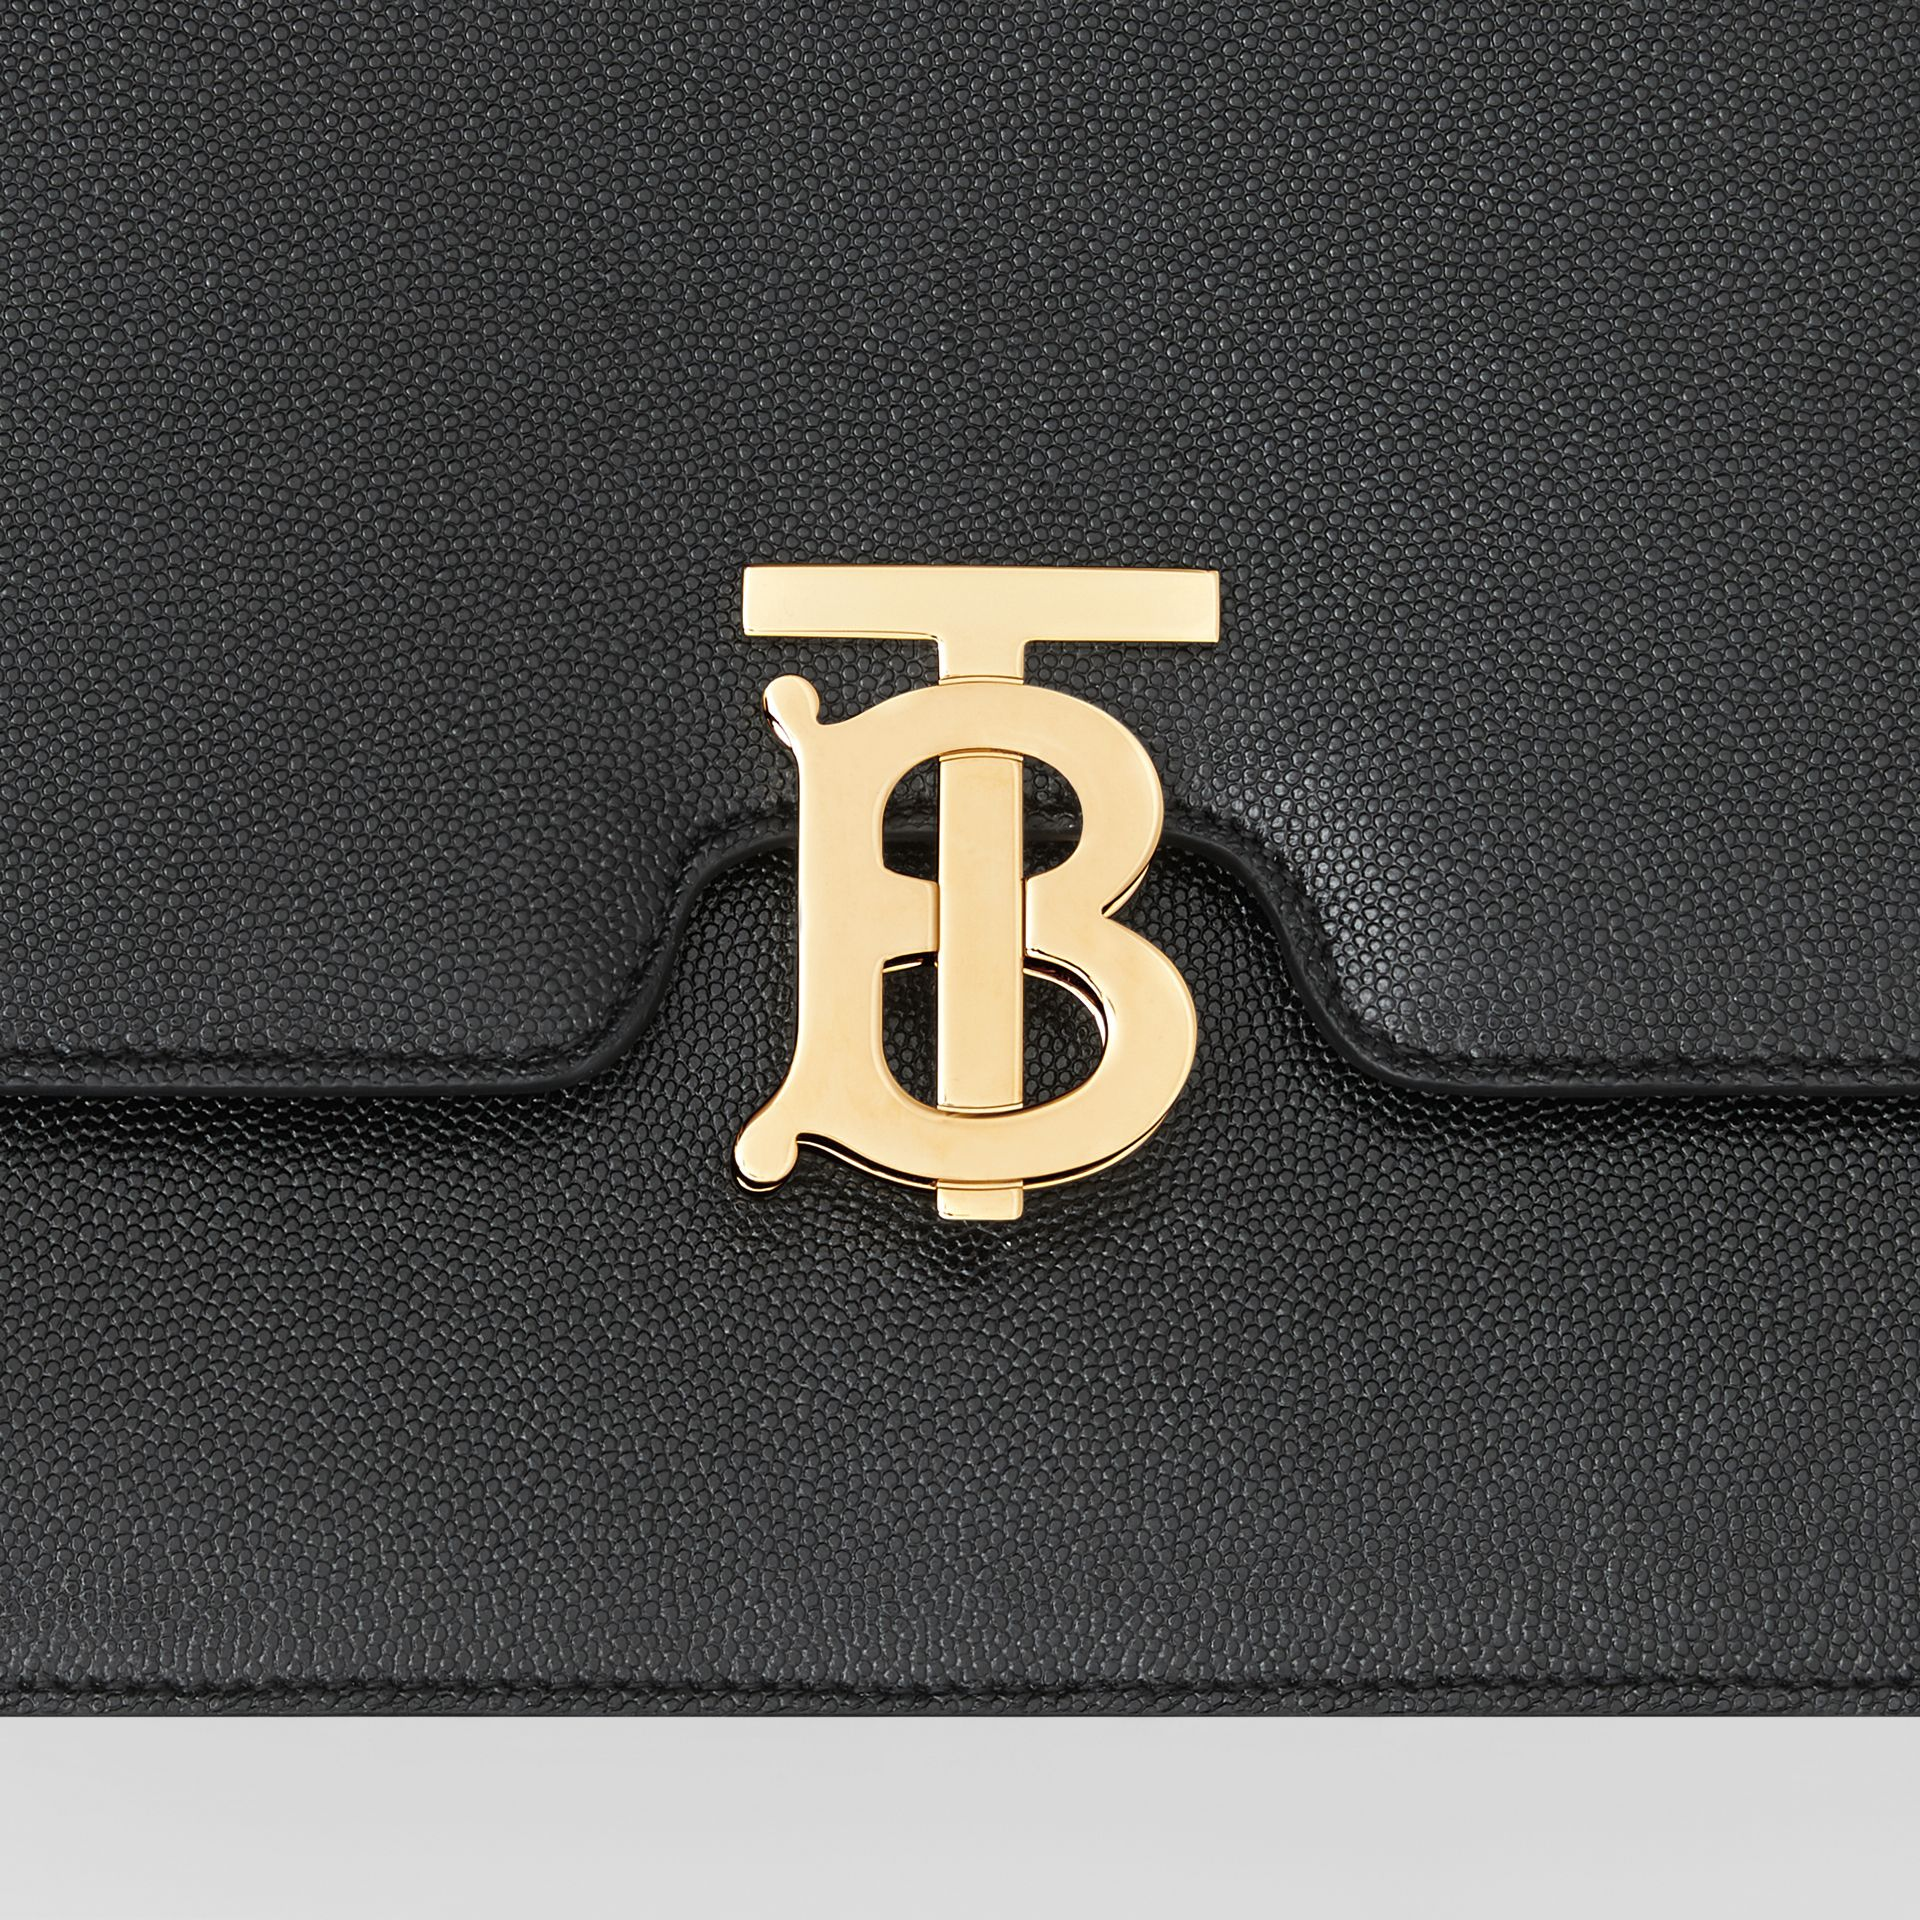 Small Grainy Leather TB Bag in Black - Women | Burberry Australia - gallery image 1